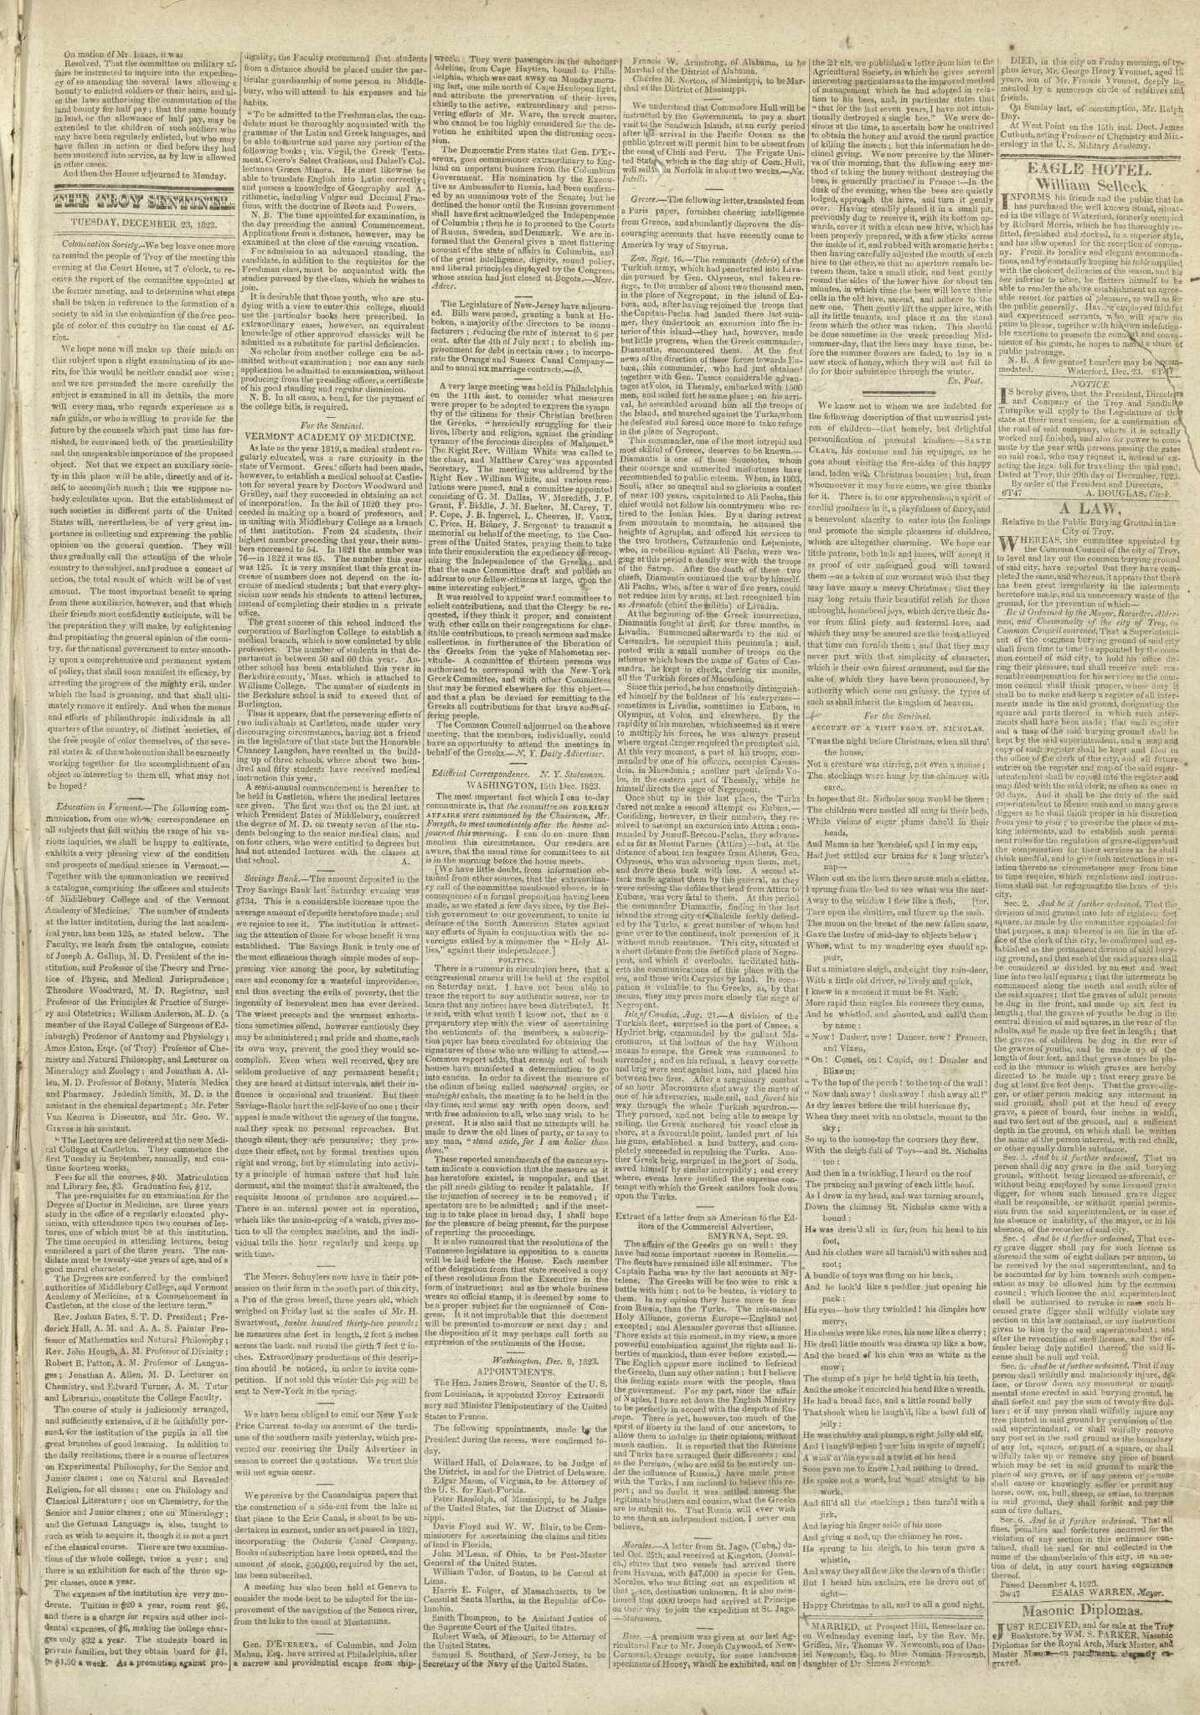 """The poem """"Account of a Visit from St. Nicholas,"""" popularly known as """"'Twas the night before Christmas,"""" located below right, was first published on the front page of the Troy Sentinel on Dec. 23, 1823. (Courtesy Gramercy Communications)"""